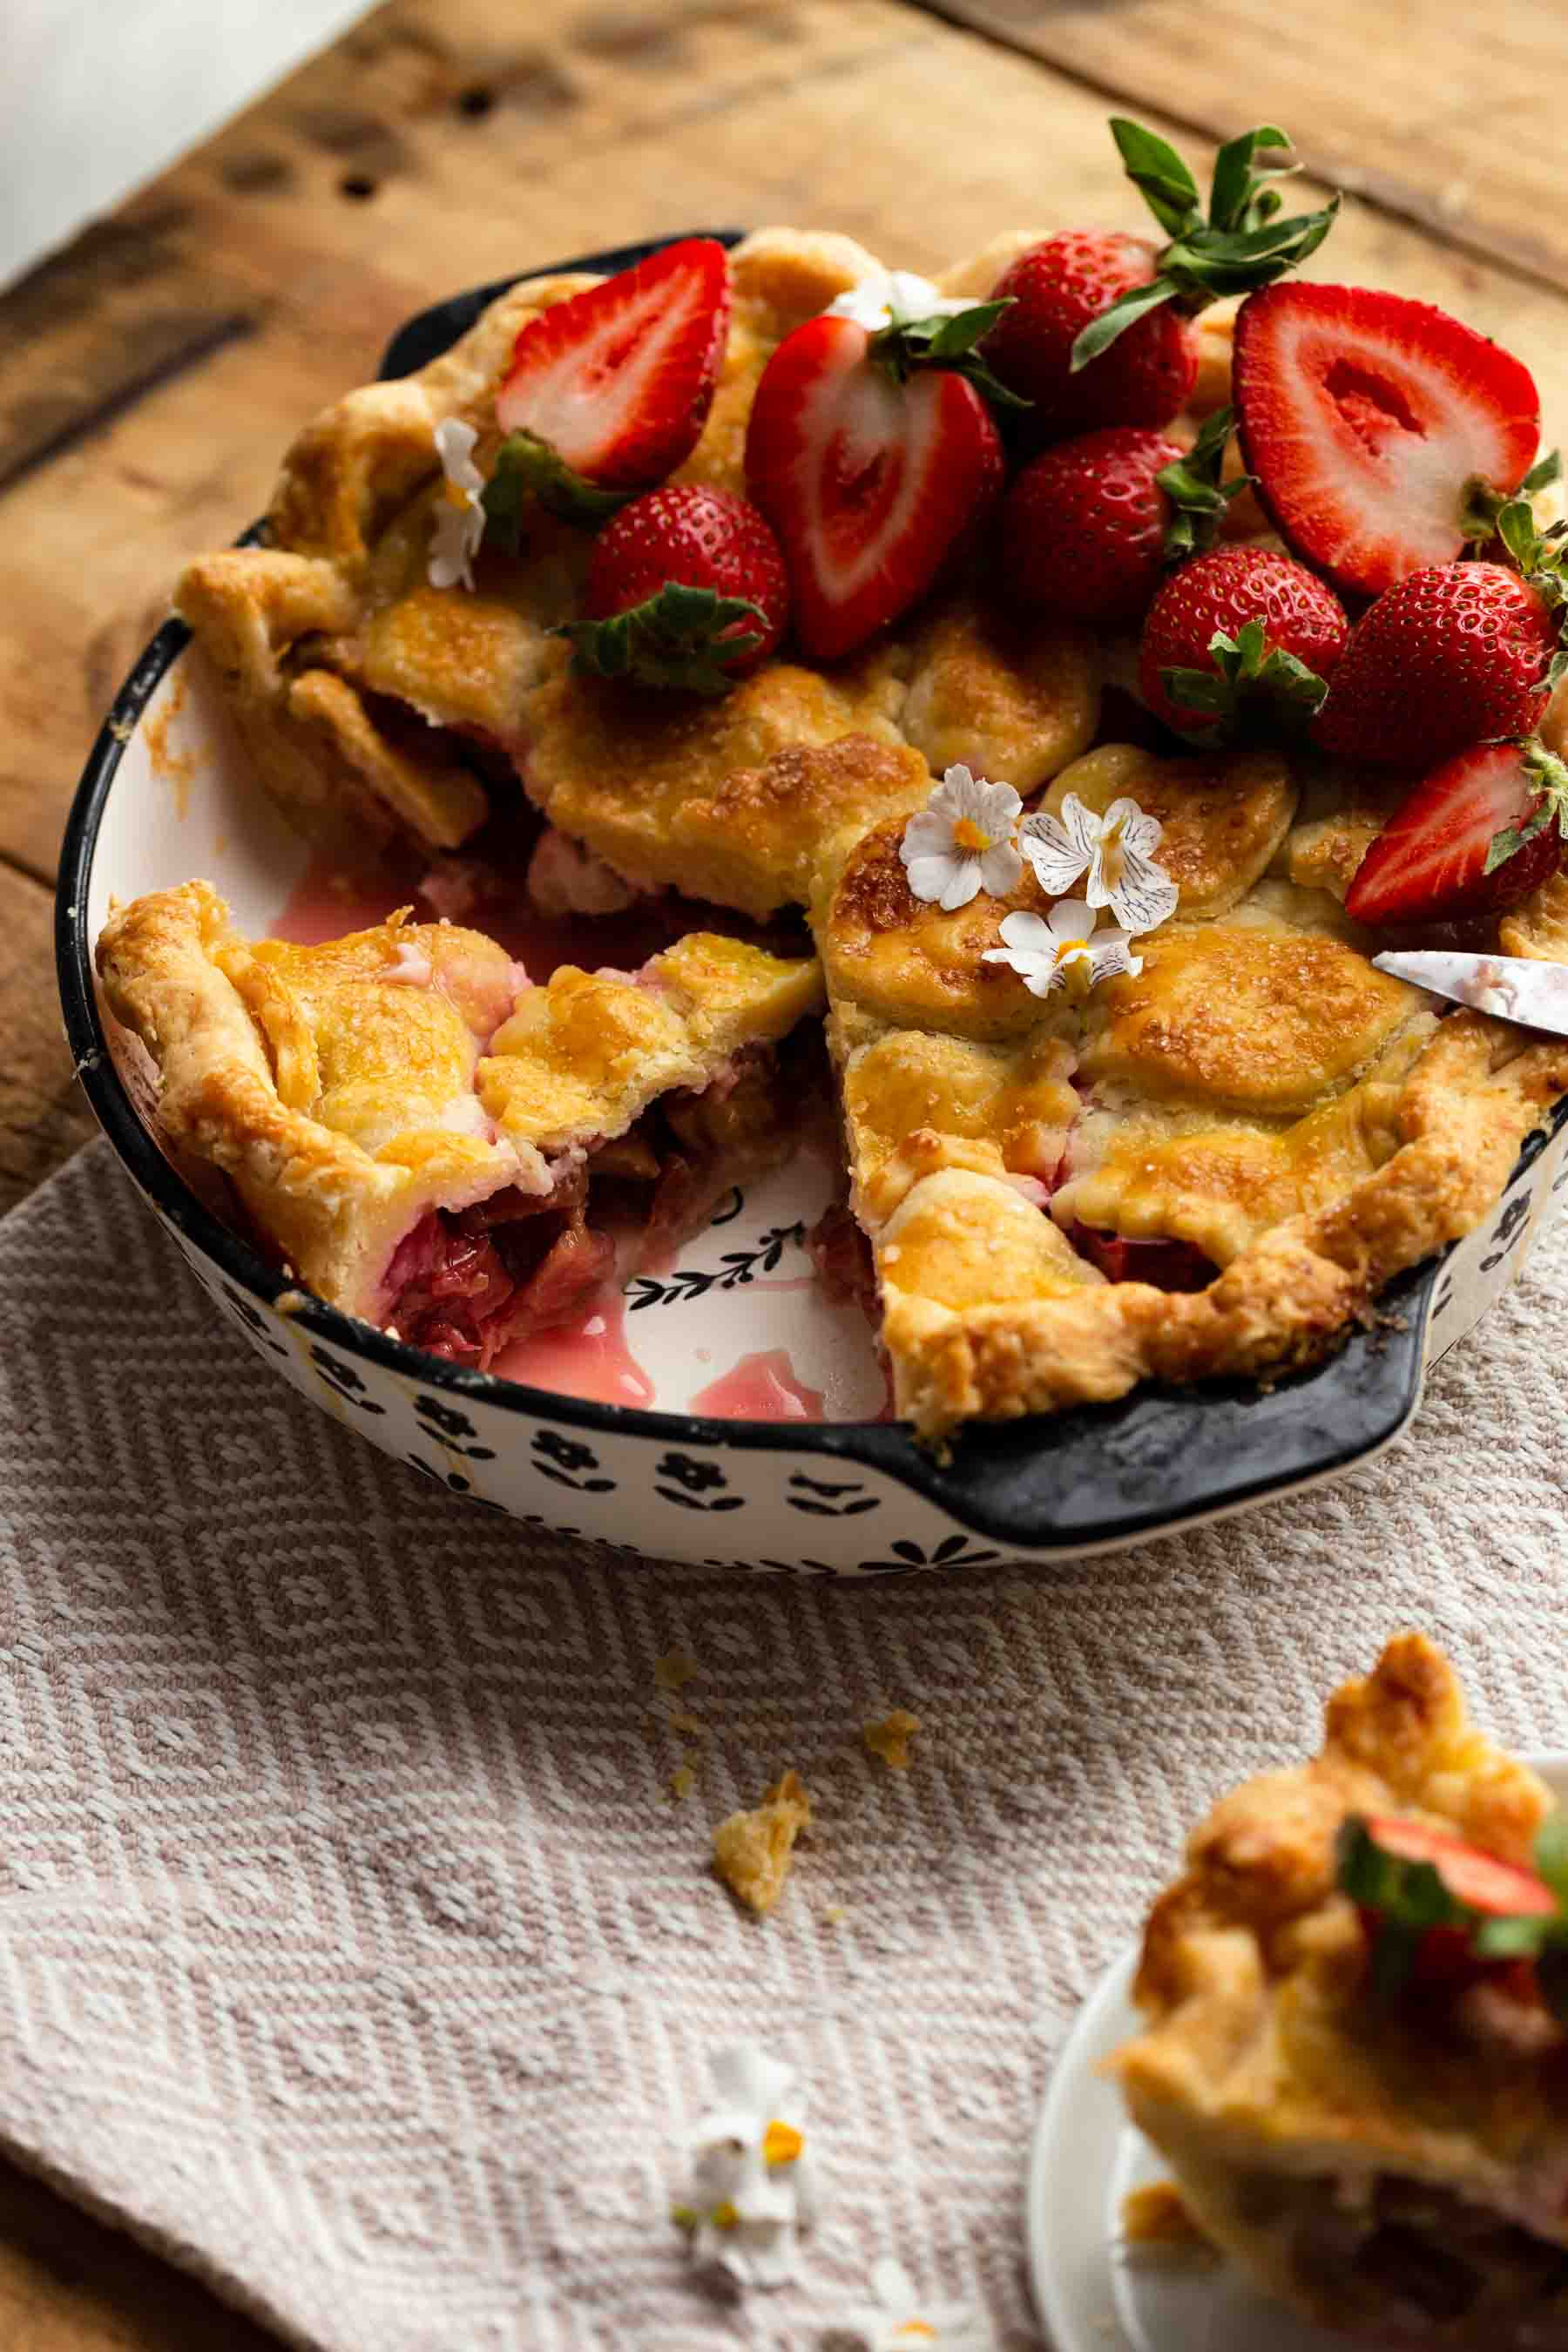 homemade rhubarb pie with double layer of crust on table